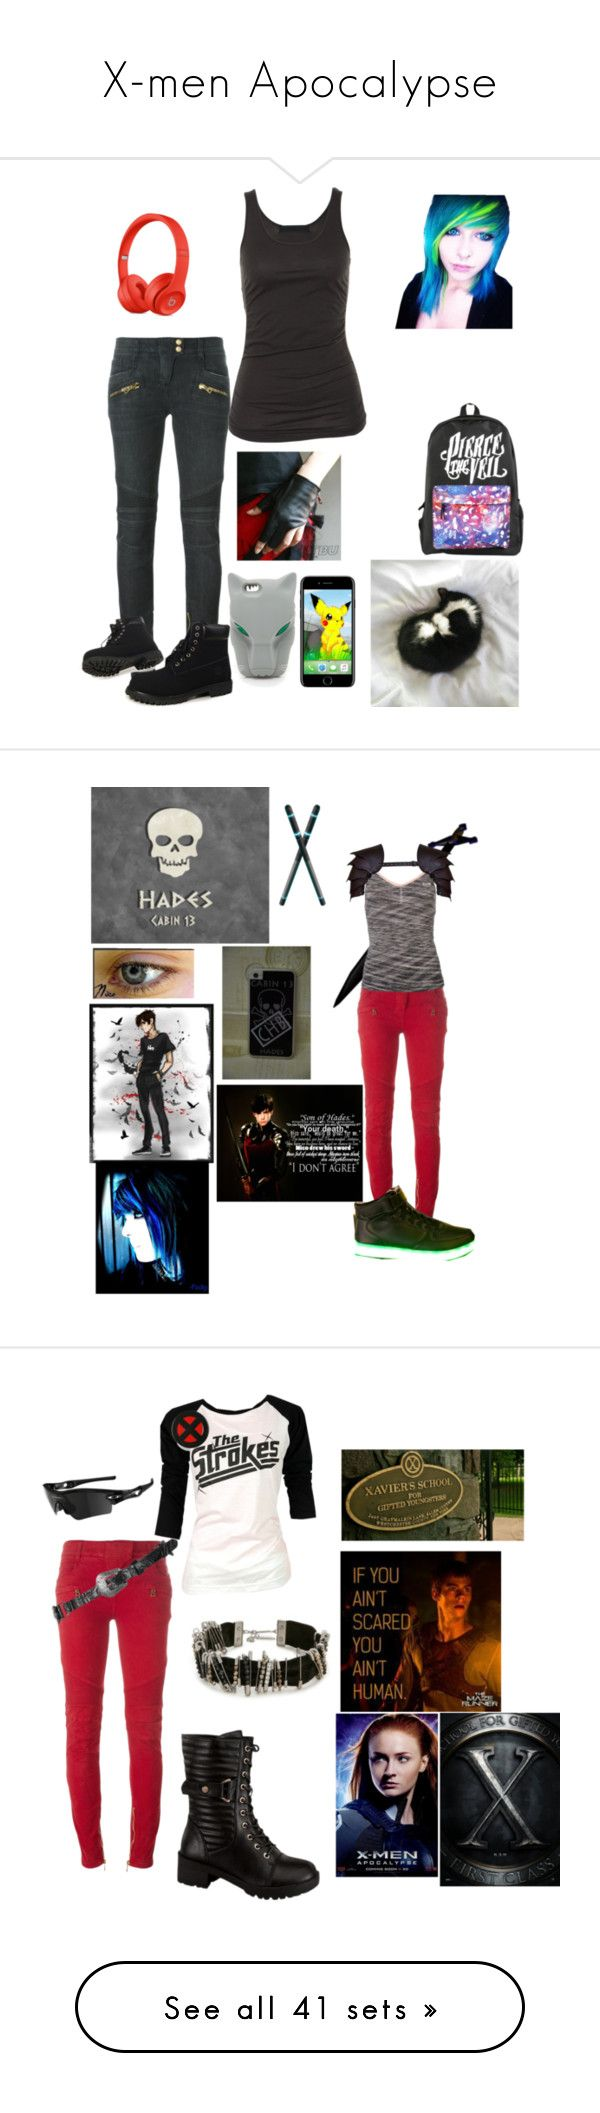 """X-men Apocalypse"" by ironkyle ❤ liked on Polyvore featuring Balmain, Tusnelda Bloch, Timberland, STELLA McCARTNEY, USA Pro, Braun, Nico, Topshop, Marc Jacobs and Wild Diva"